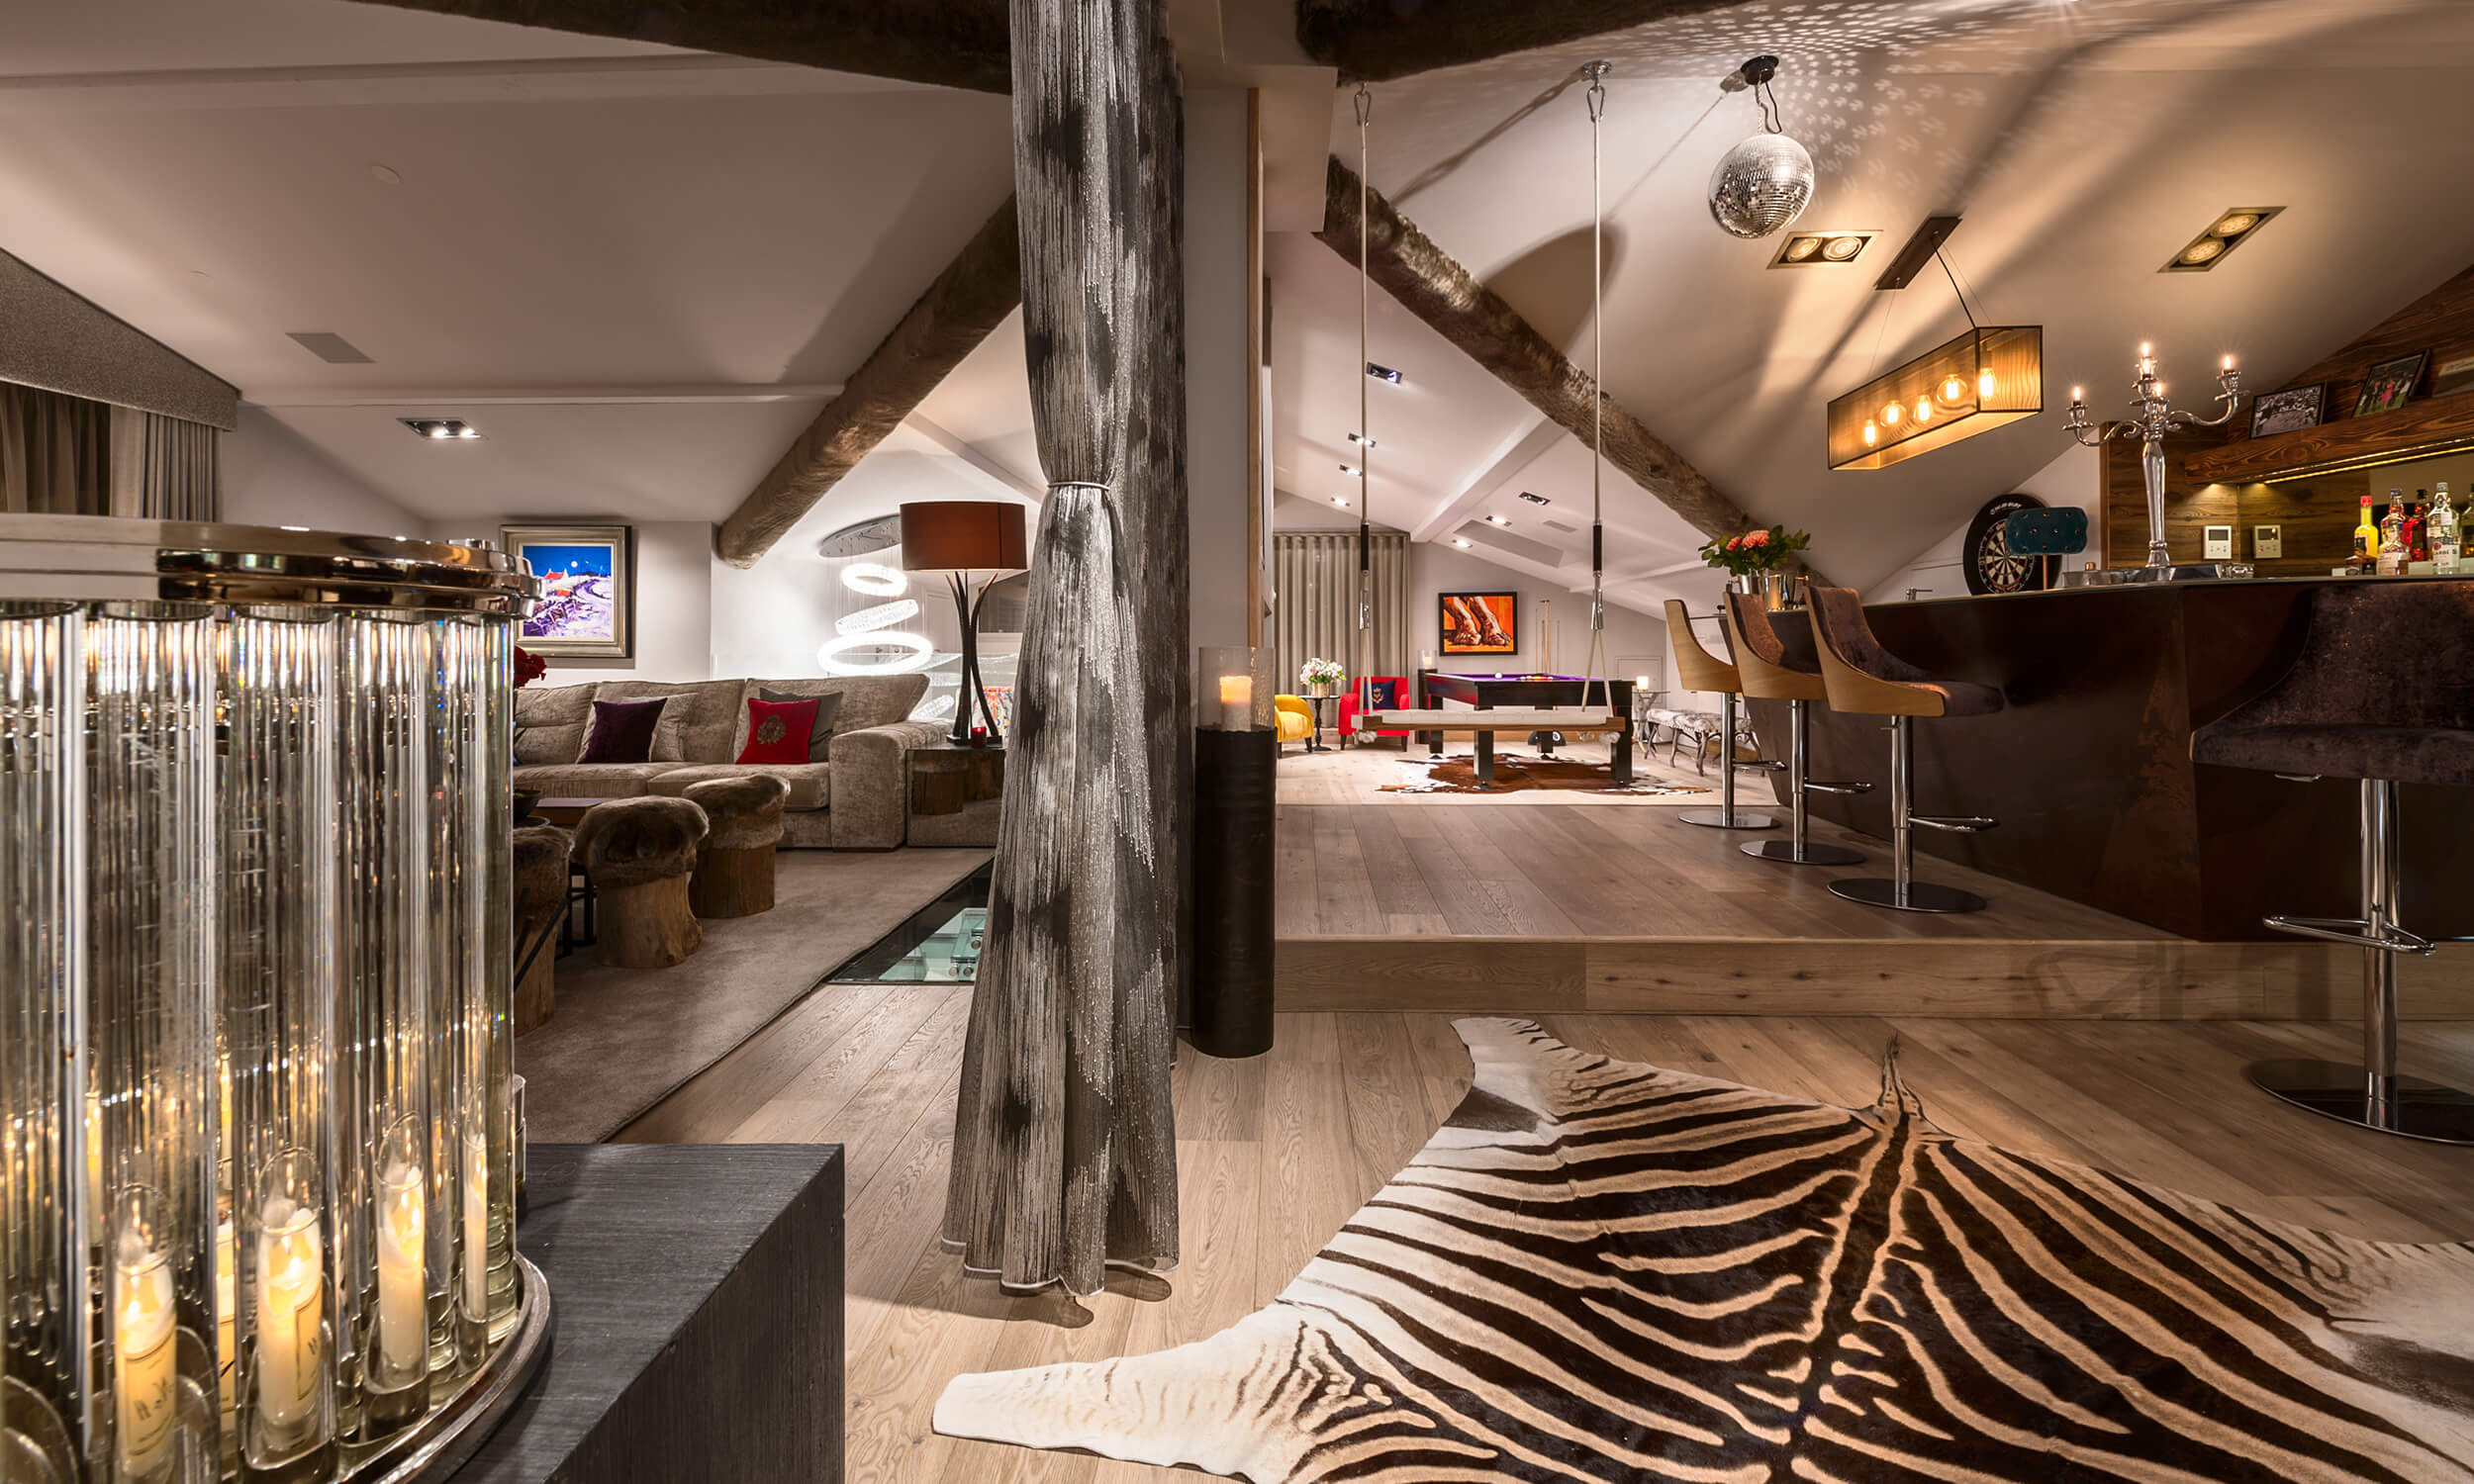 Catered summer chalet in Les Gets